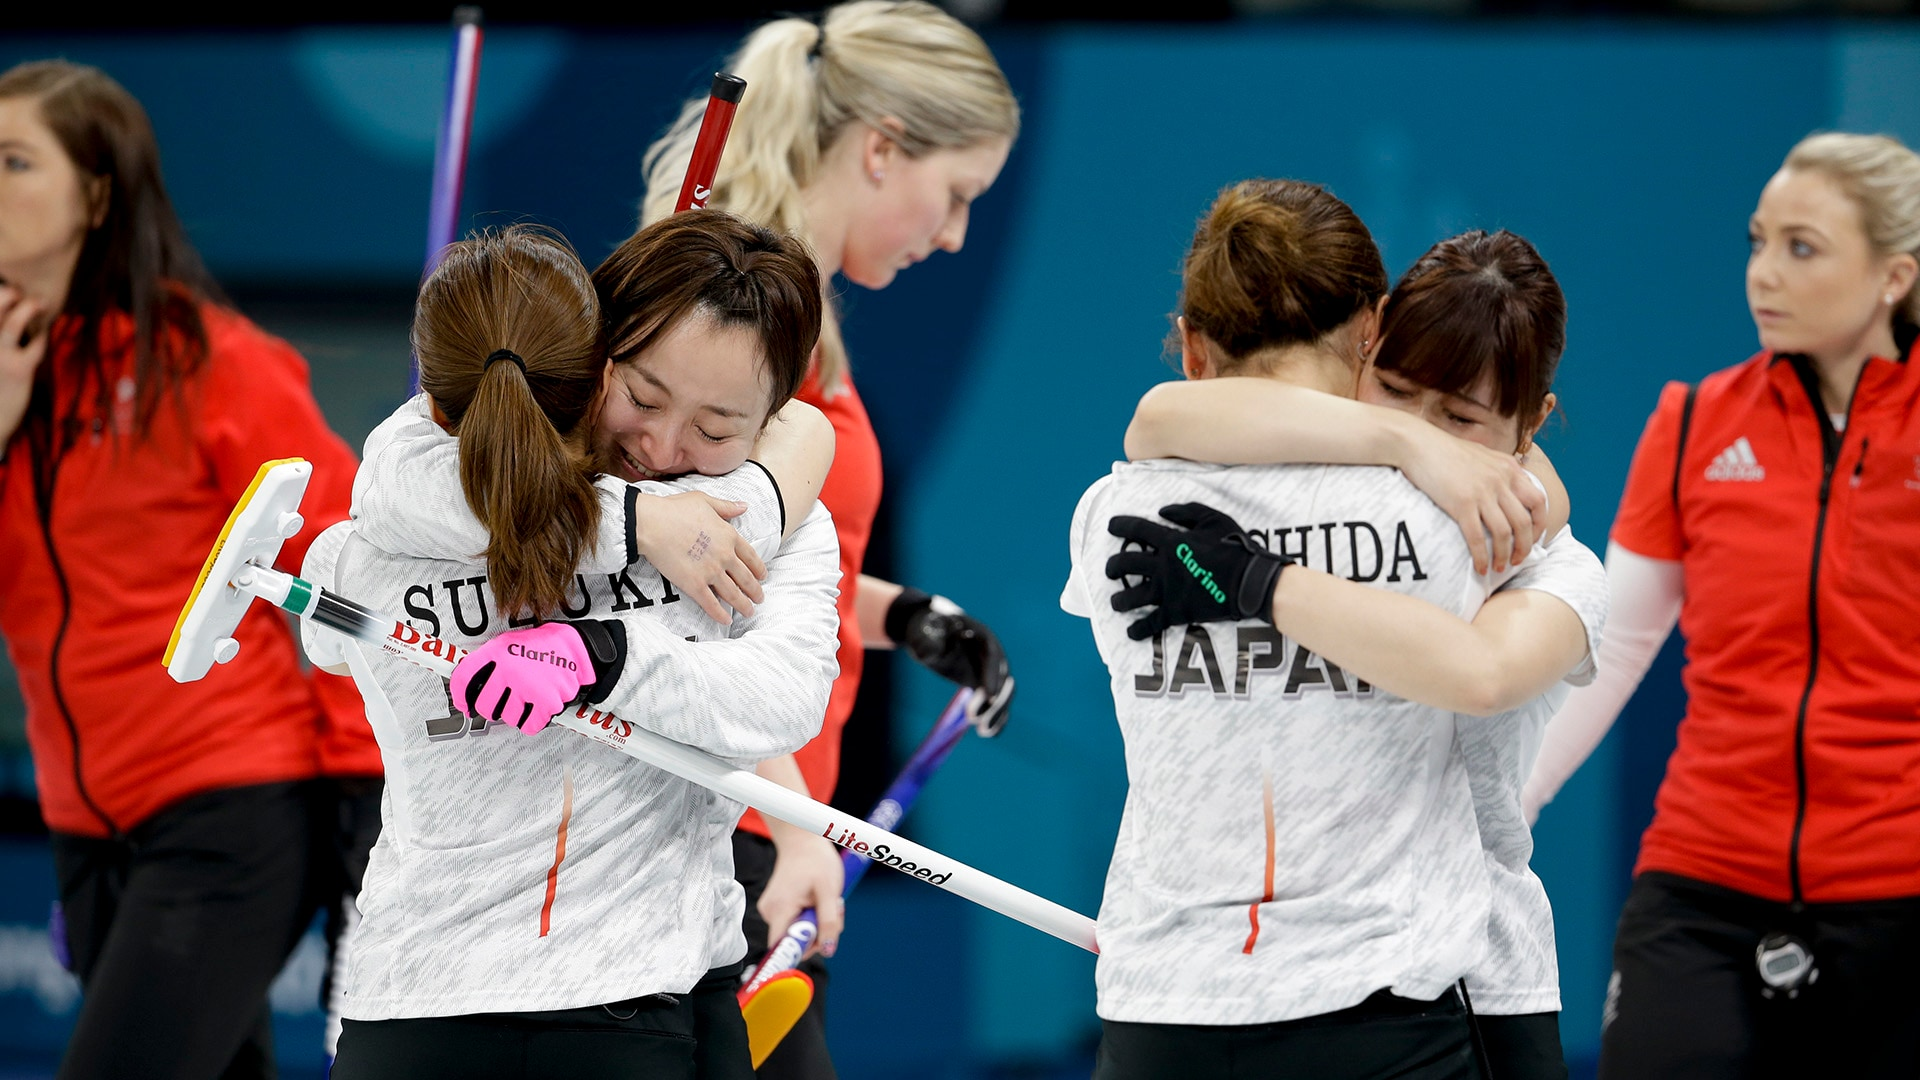 Curling: Japan win bronze to claim first Olympic medal – Reuters